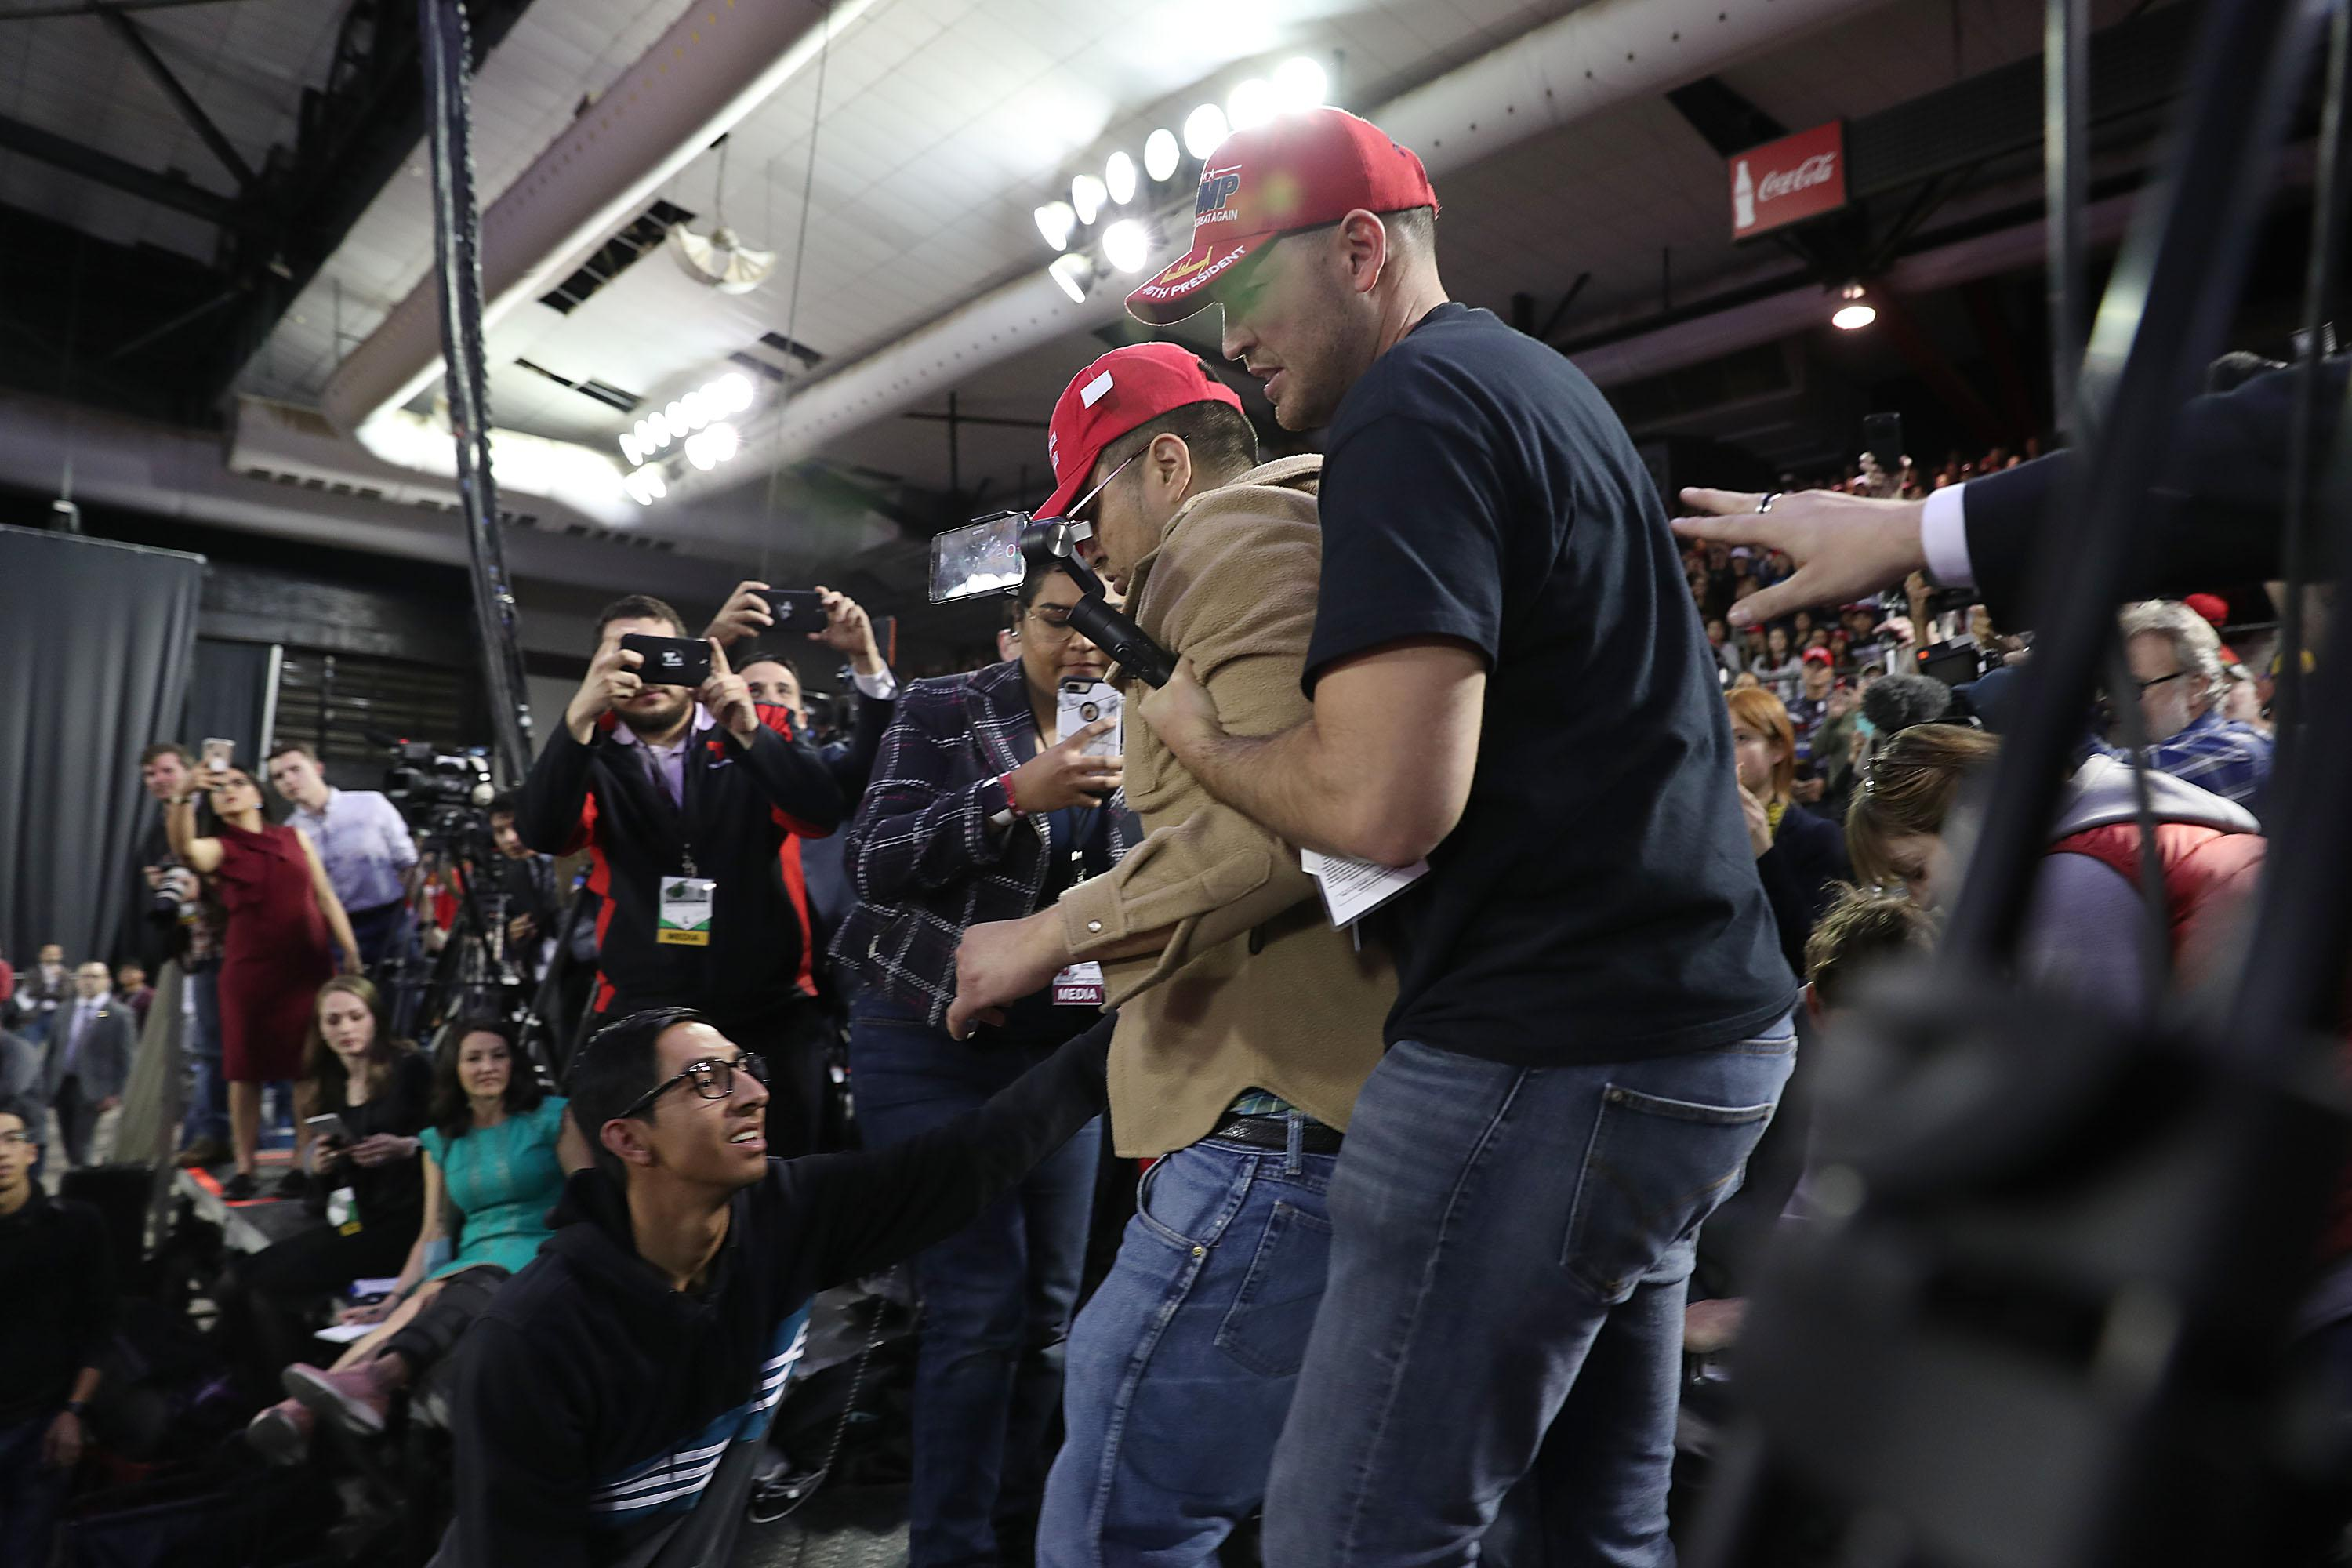 The man, wearing a brown shirt and red MAGA hat, is escorted off the platform, surrounded by reporters with cameras.